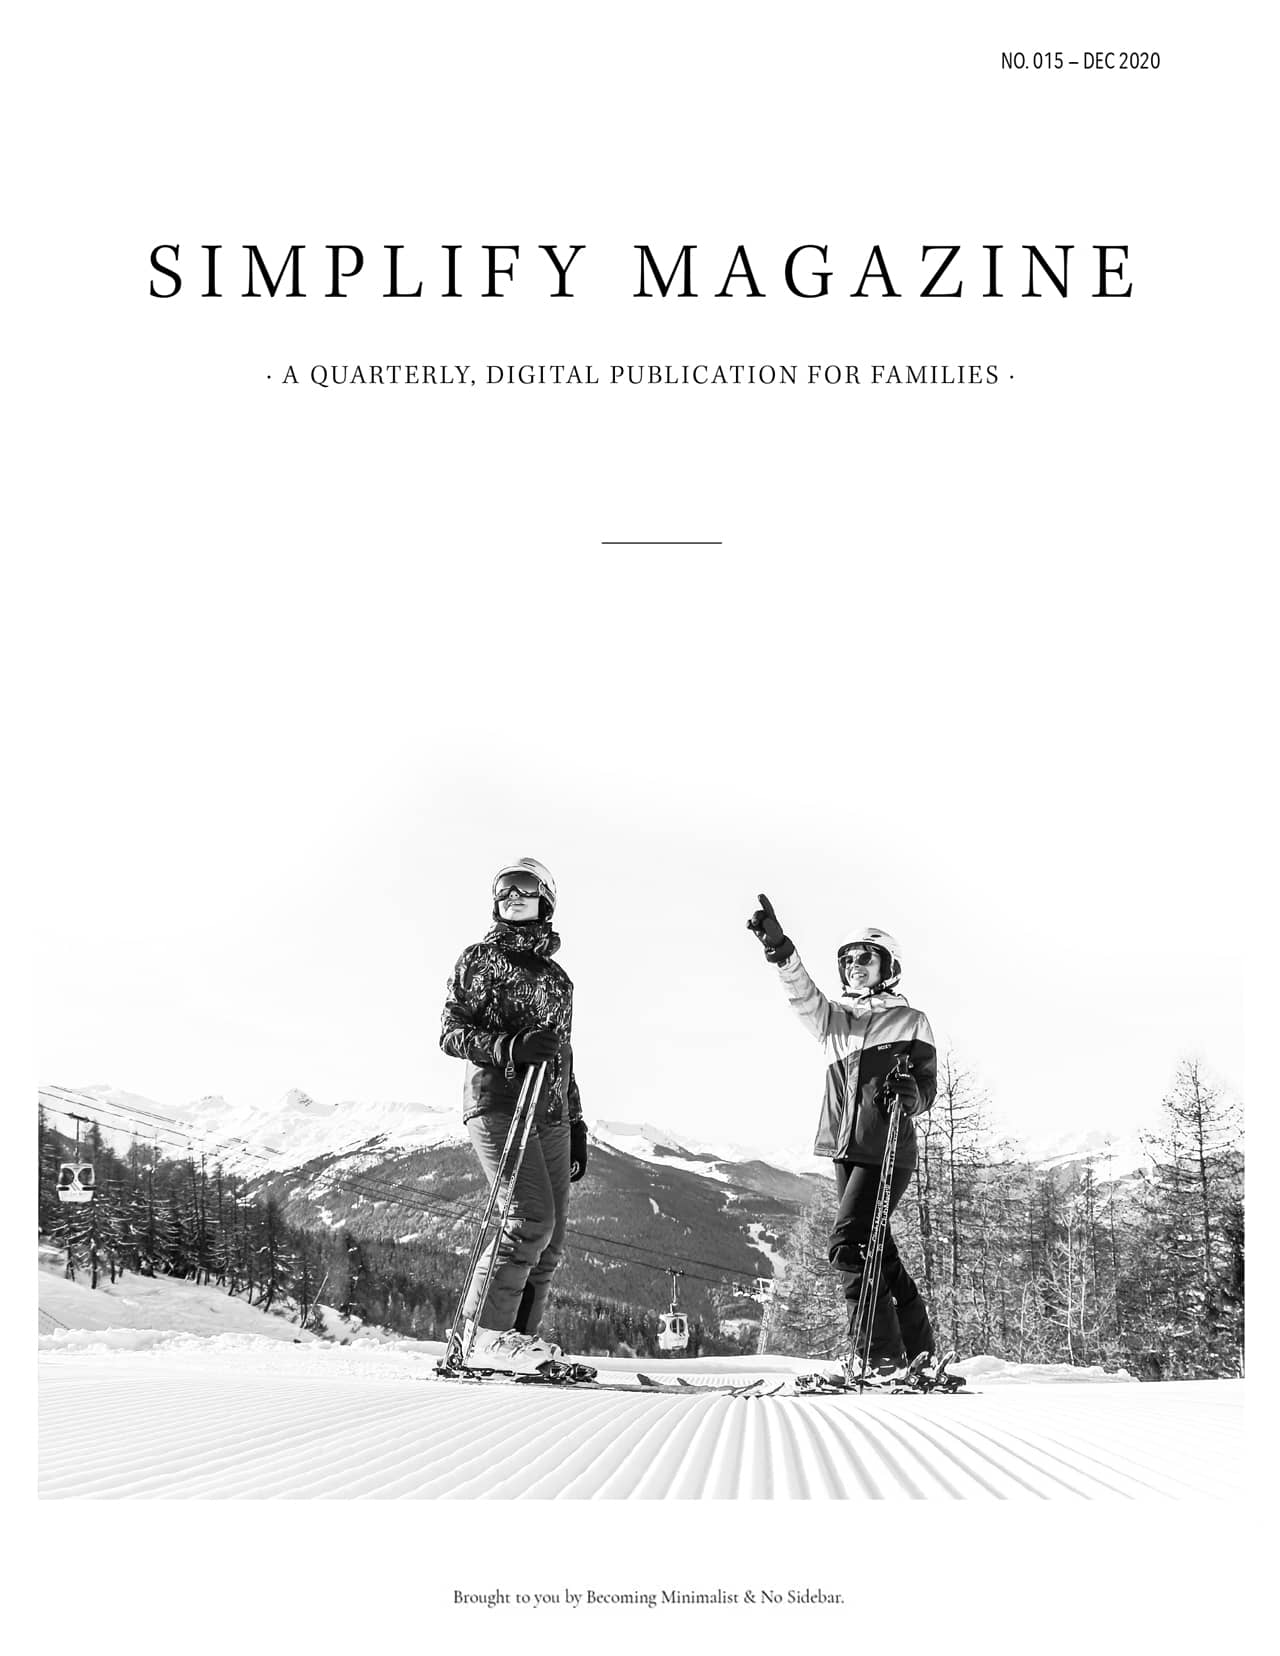 Simplify Magazine Issue #015